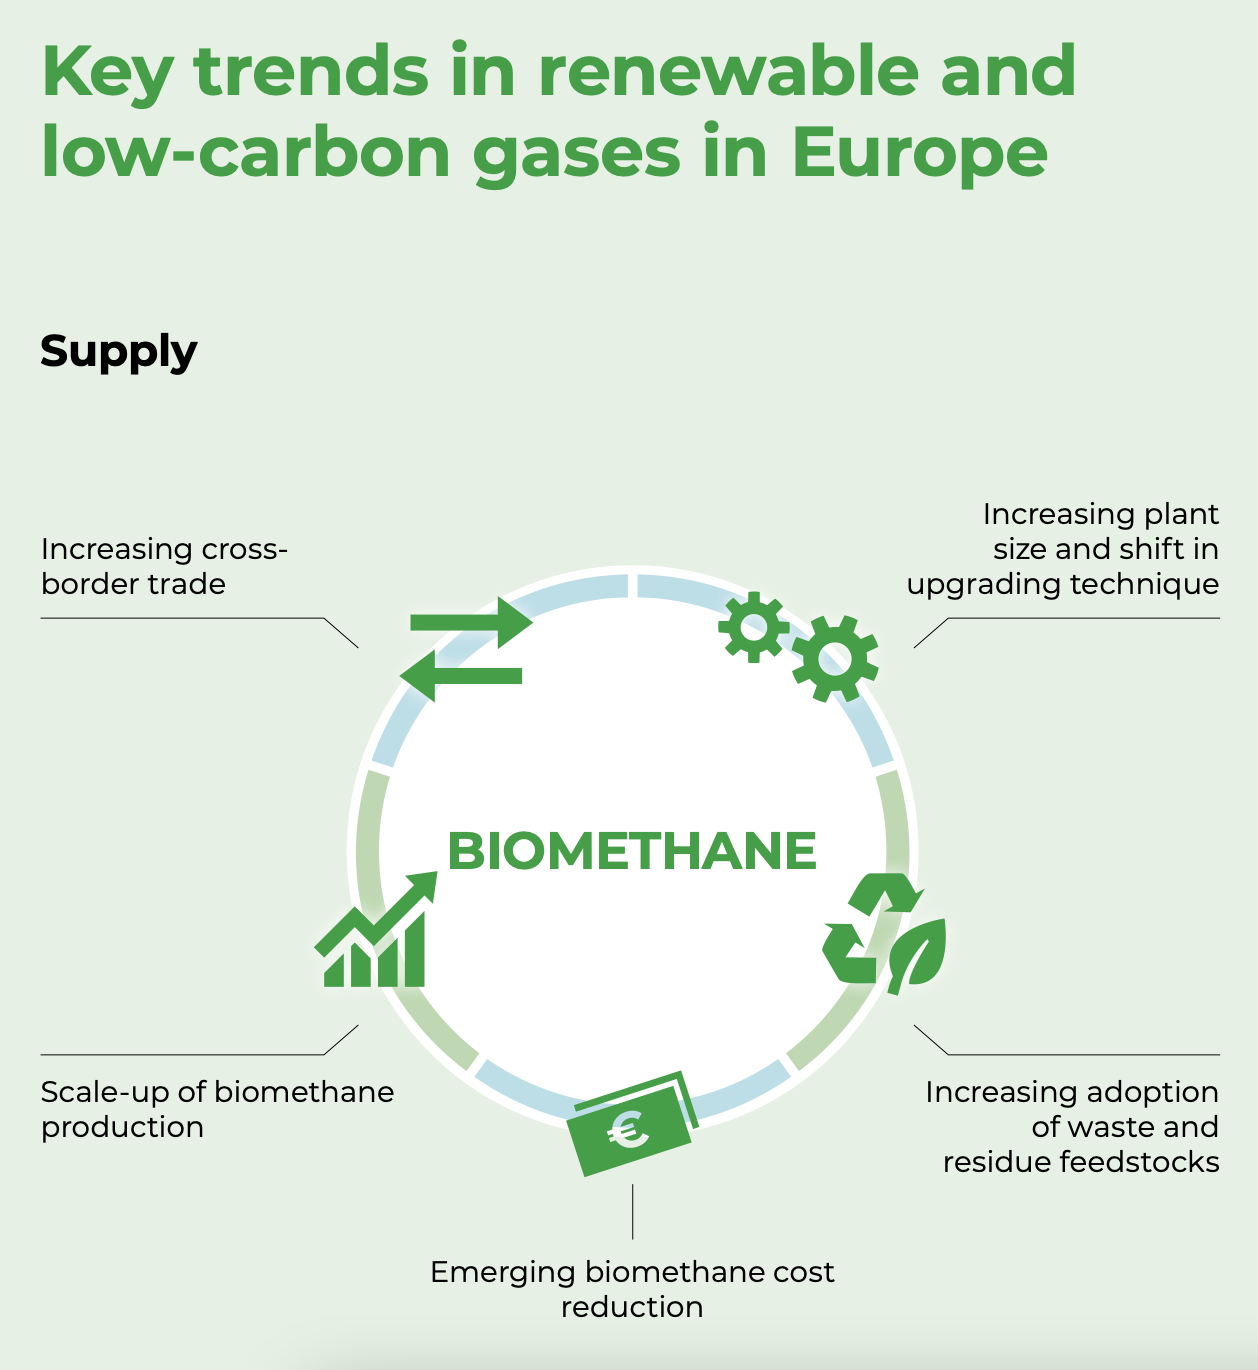 renewable and low-carbon gases in Europe